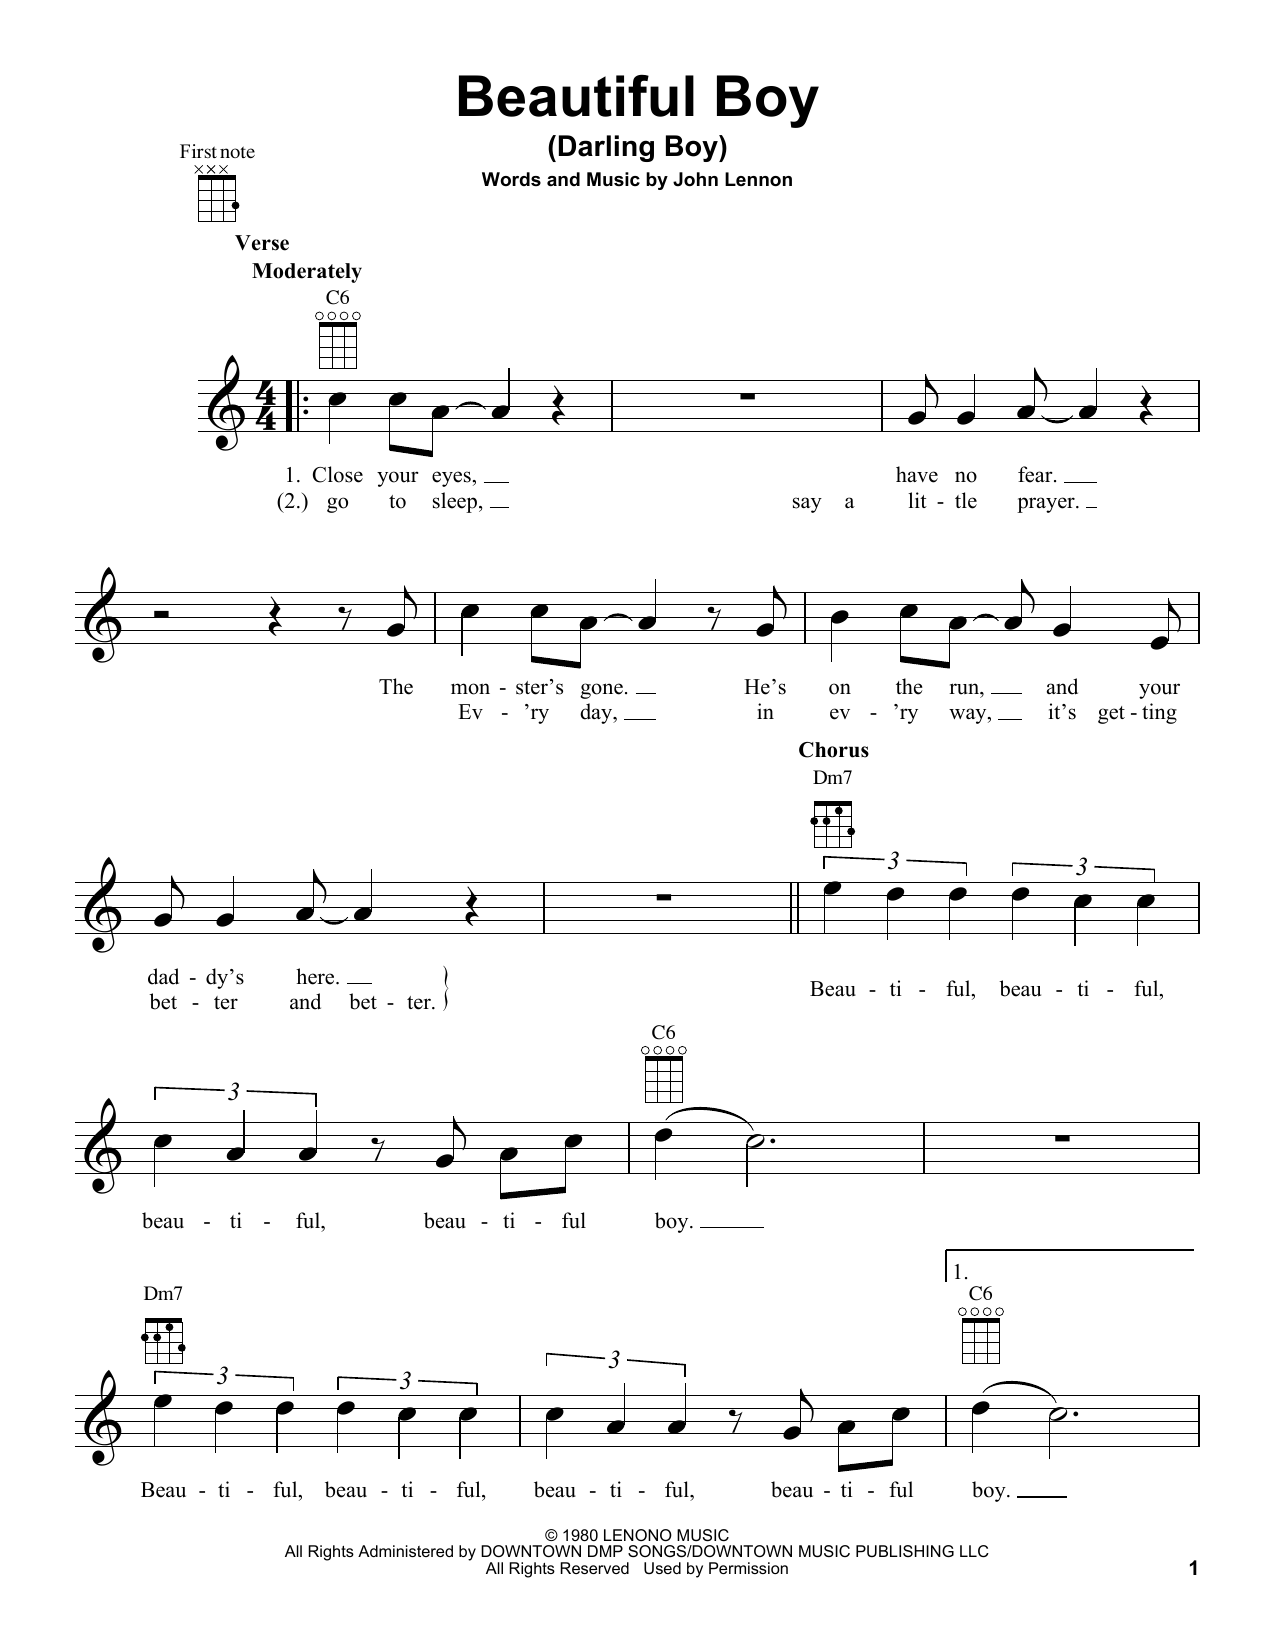 Tablature guitare Beautiful Boy (Darling Boy) de John Lennon - Ukulele